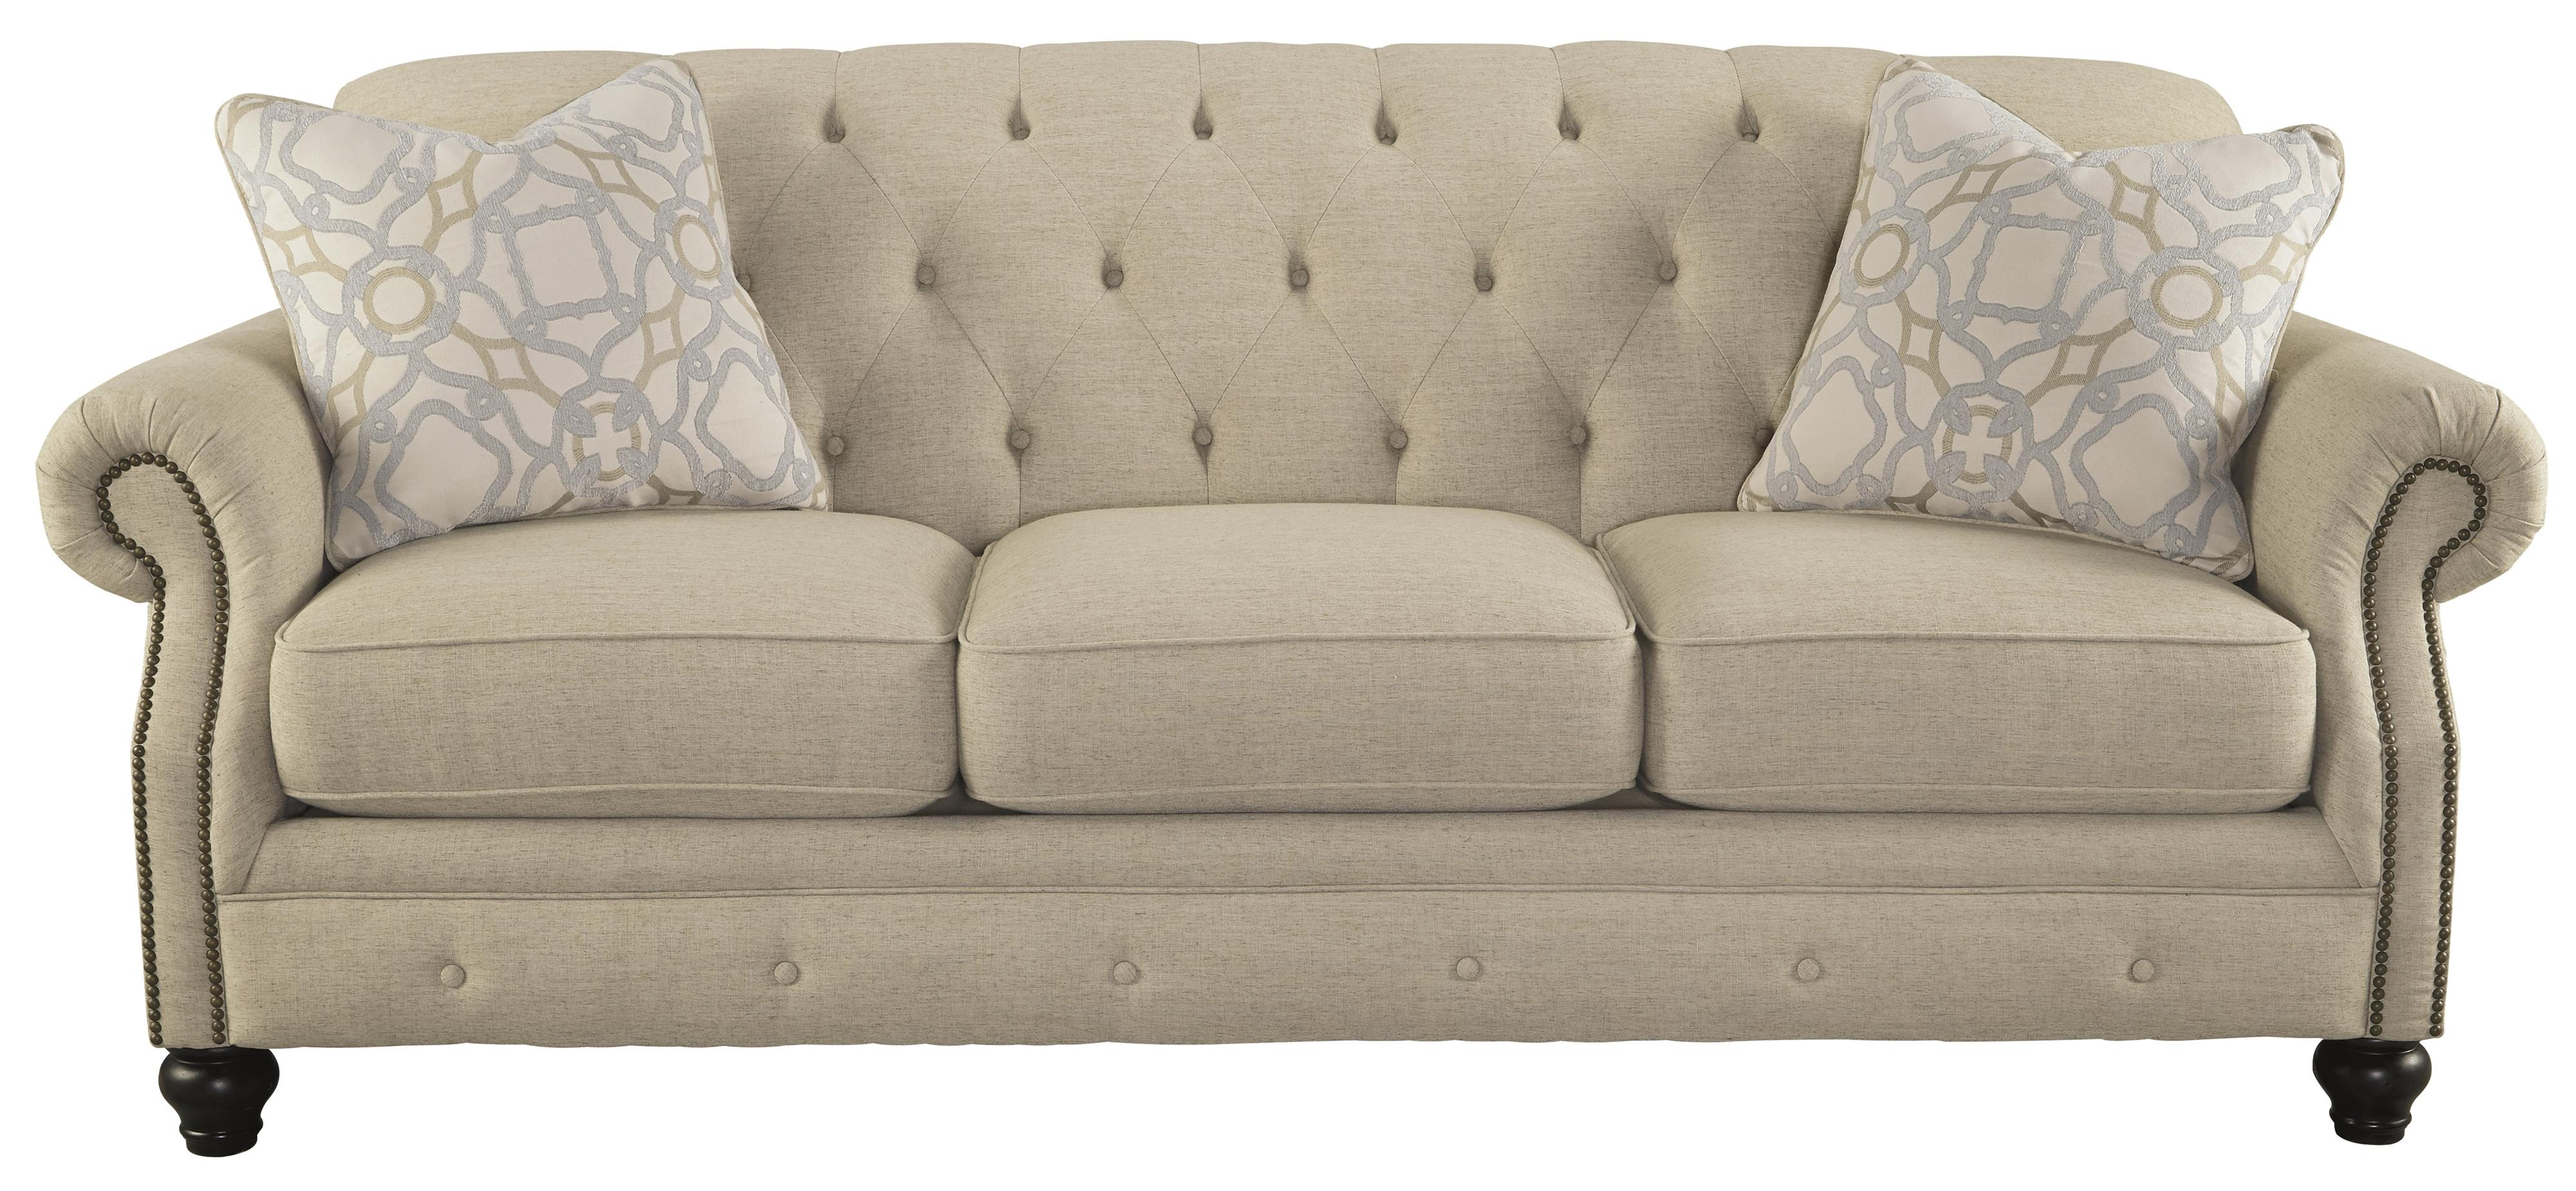 Traditional sofa with tufted back and feather blend accent for Traditional sofas and loveseats